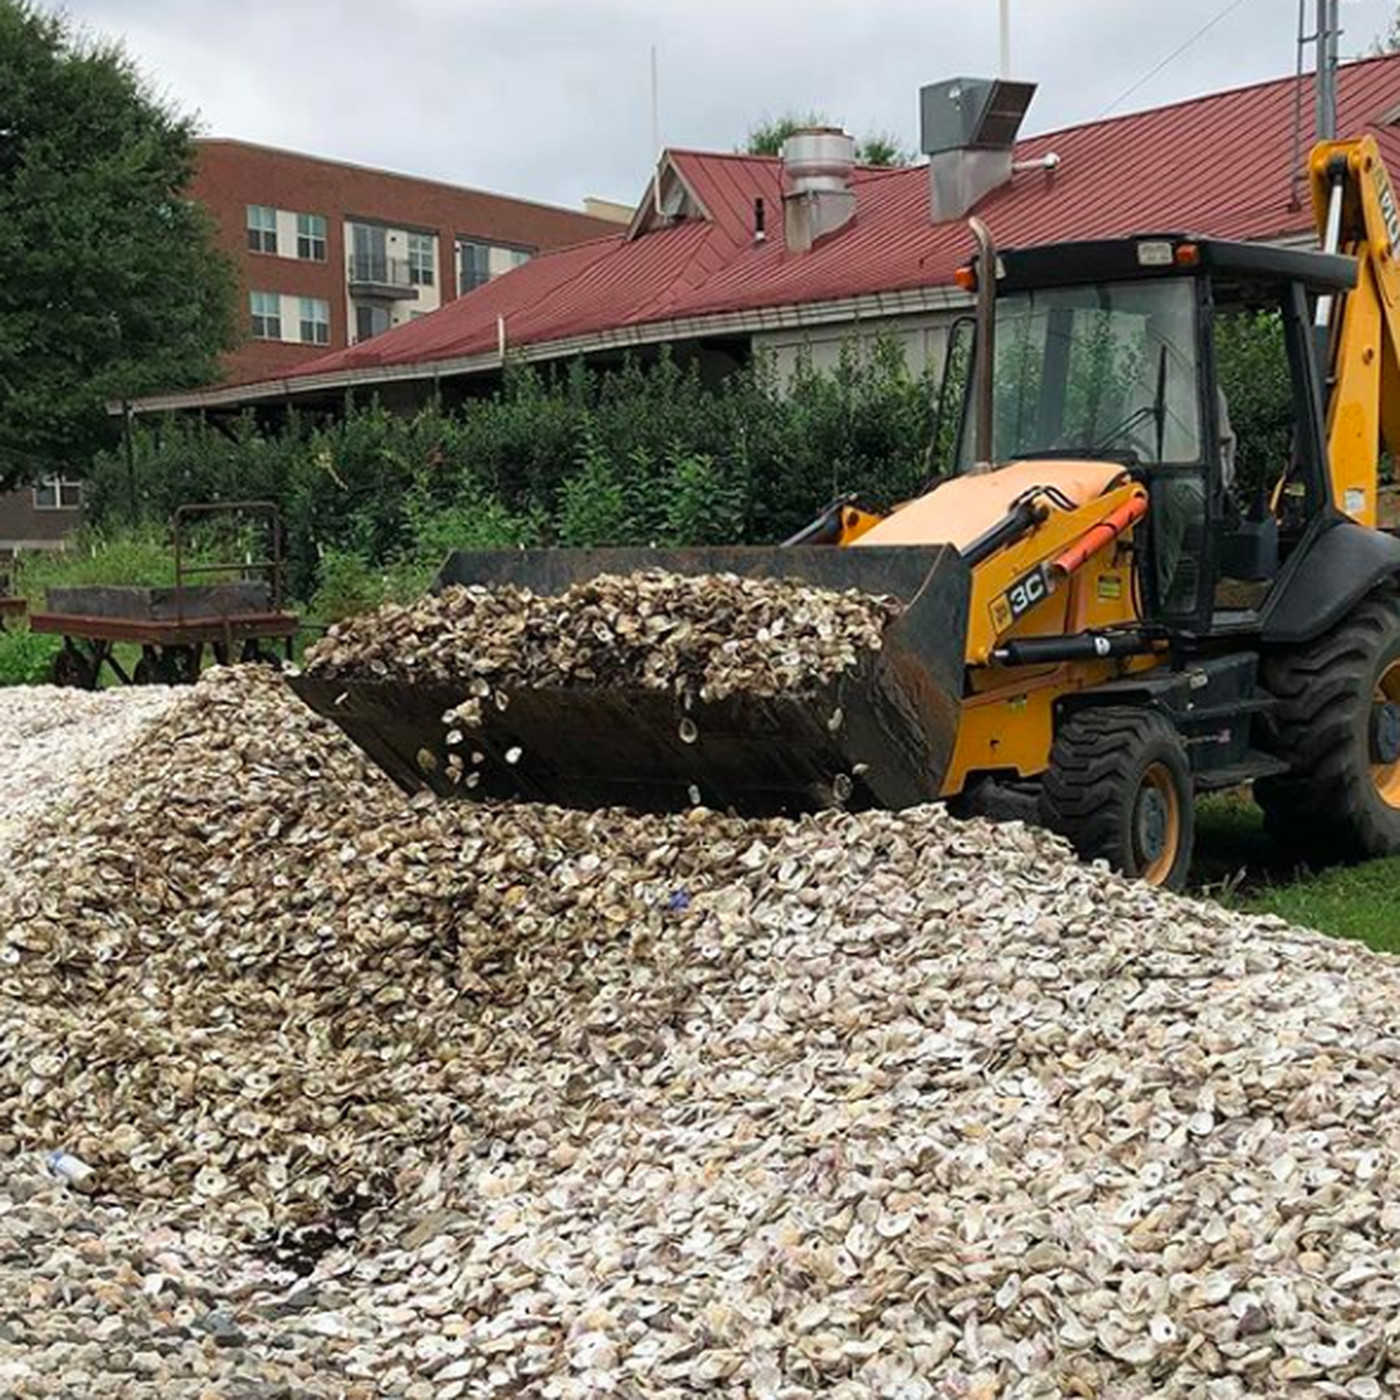 Kimball House Donates One Million Oyster Shells For Georgia Reef